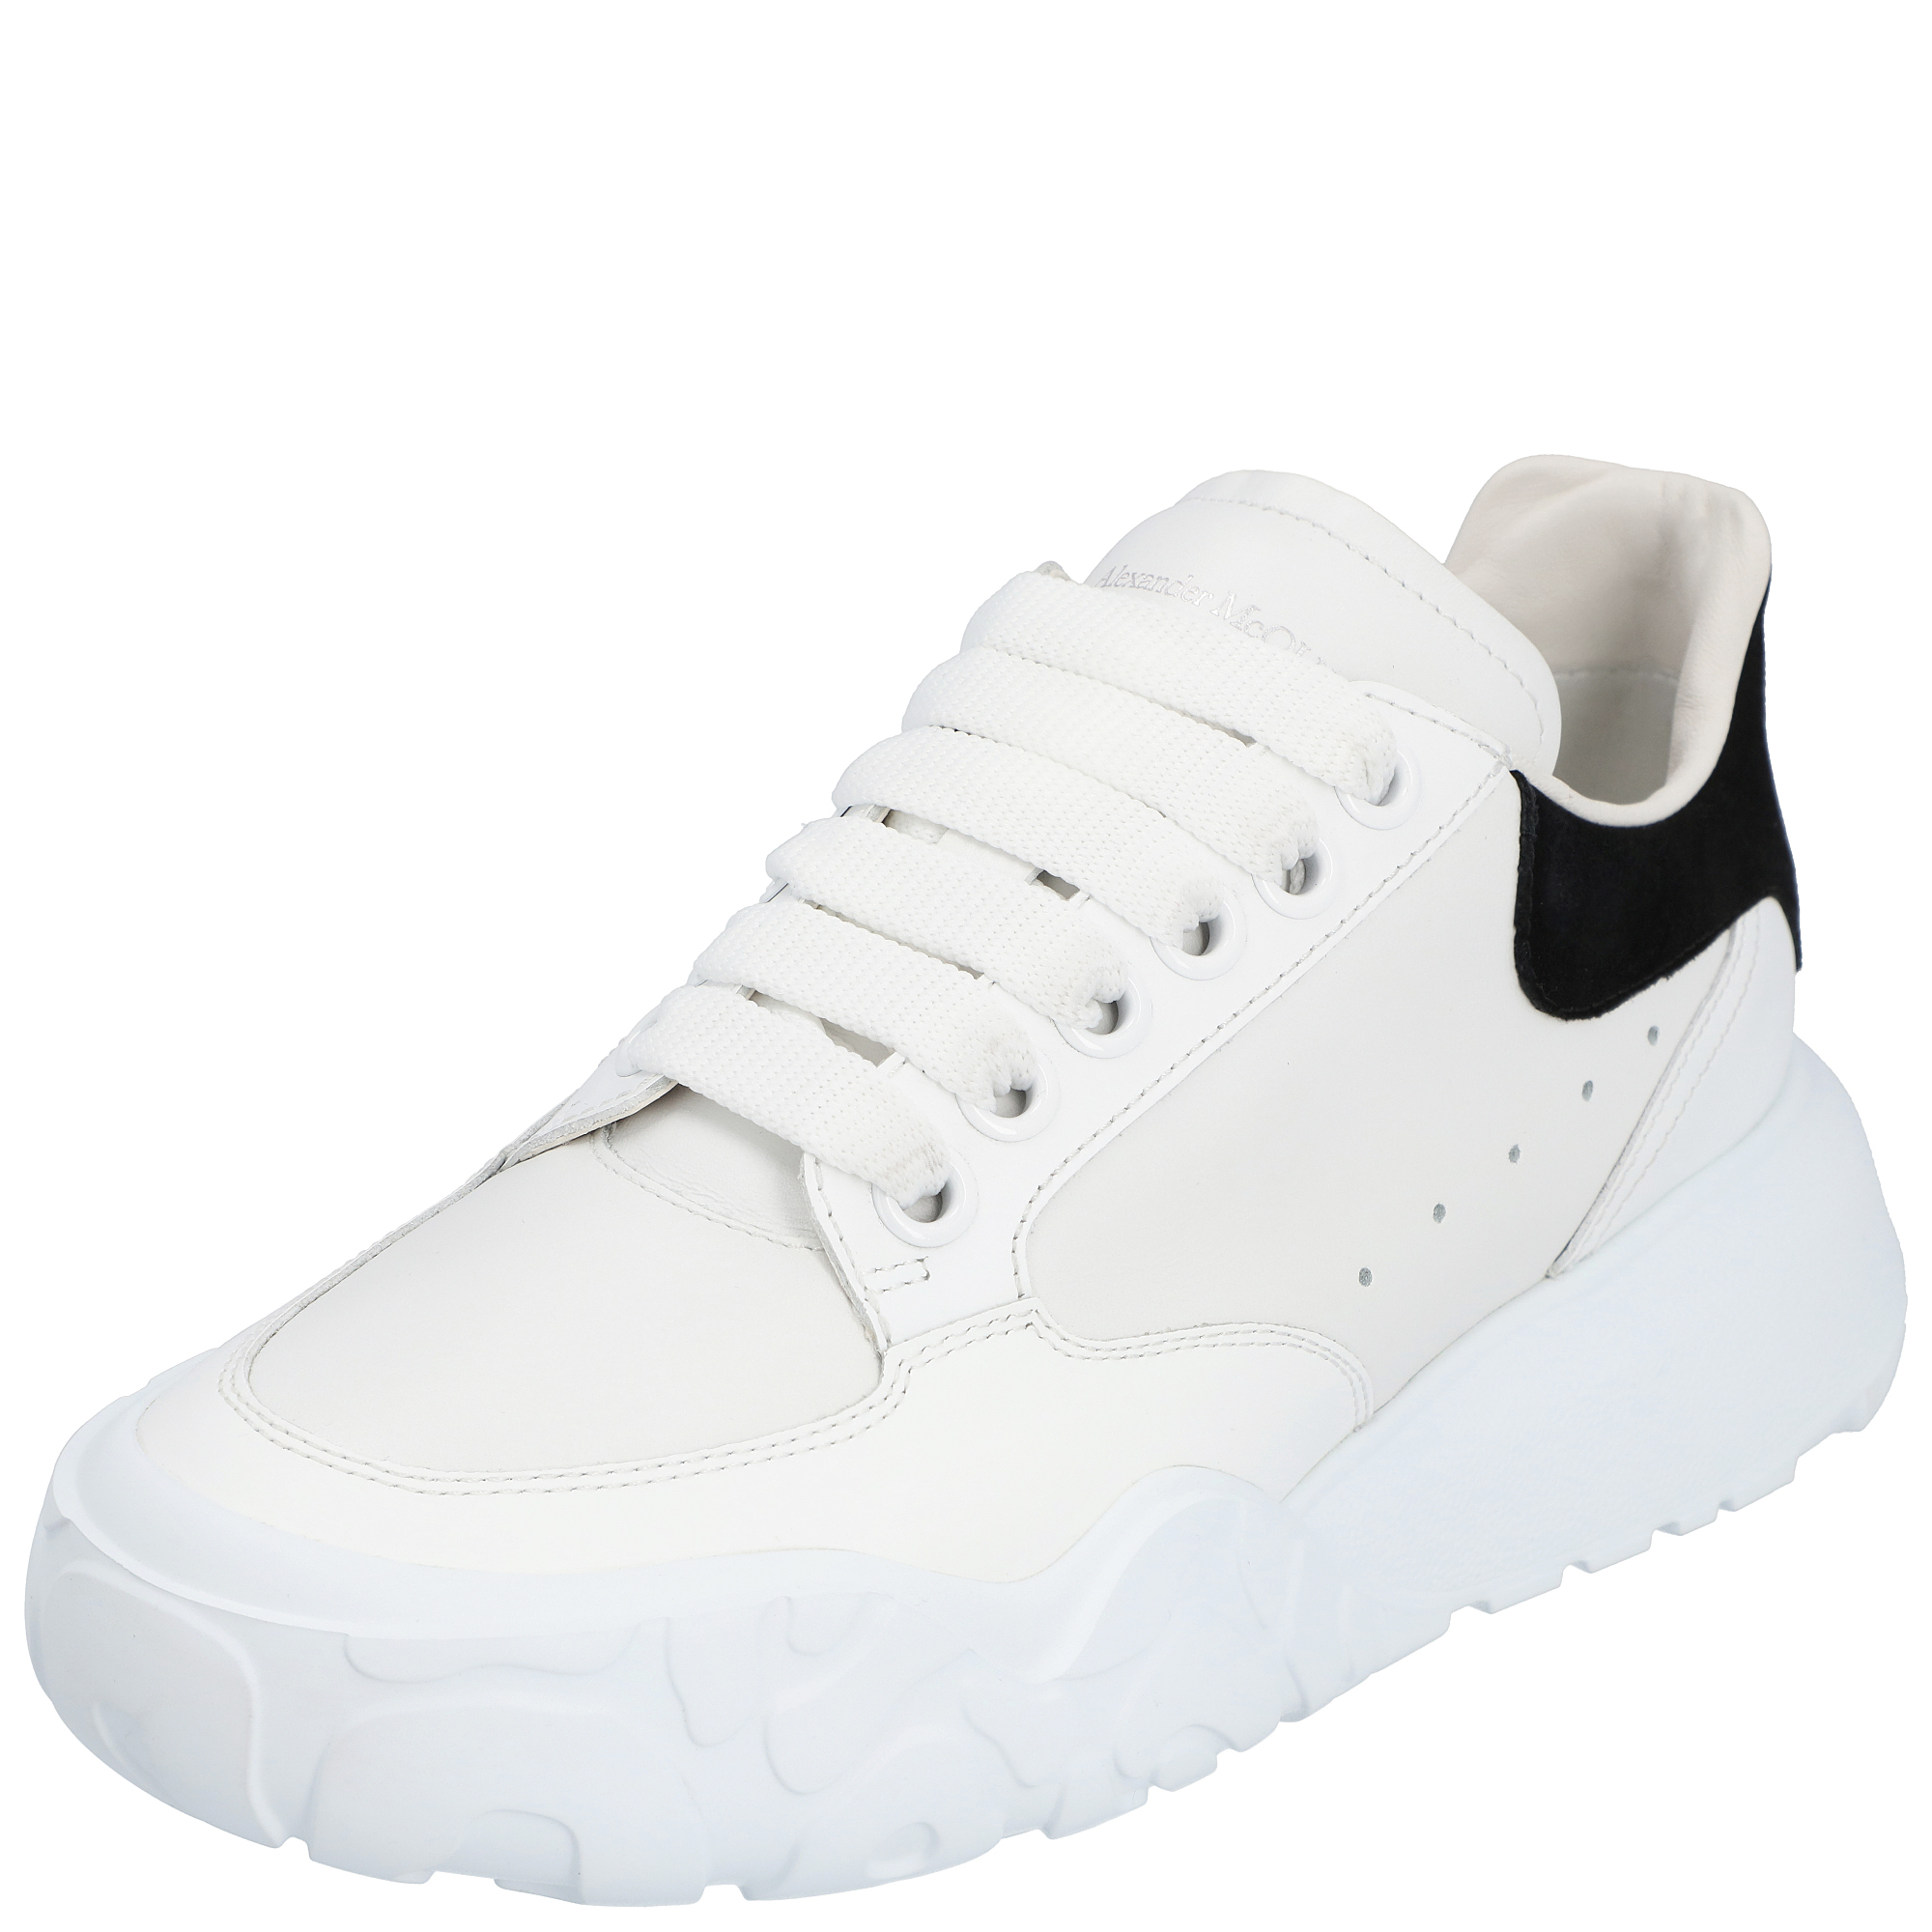 Pre-owned Alexander Mcqueen White/black Leather Court Trainer Sneakers Eu 38 (us 7.5/uk 5)